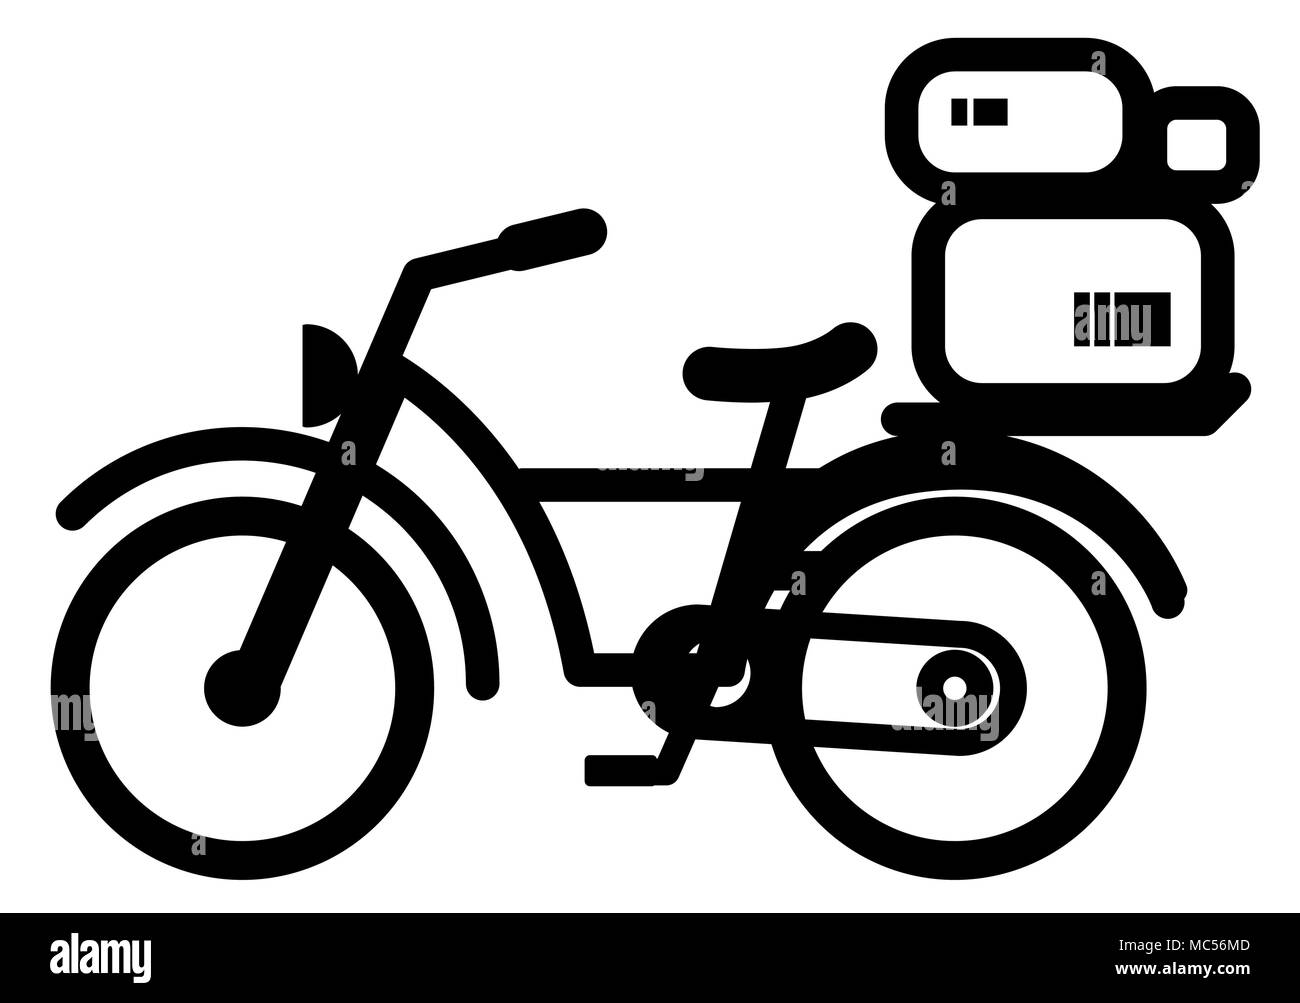 Bicycle delivery stencil black, vector illustration, horizontal, isolated - Stock Image